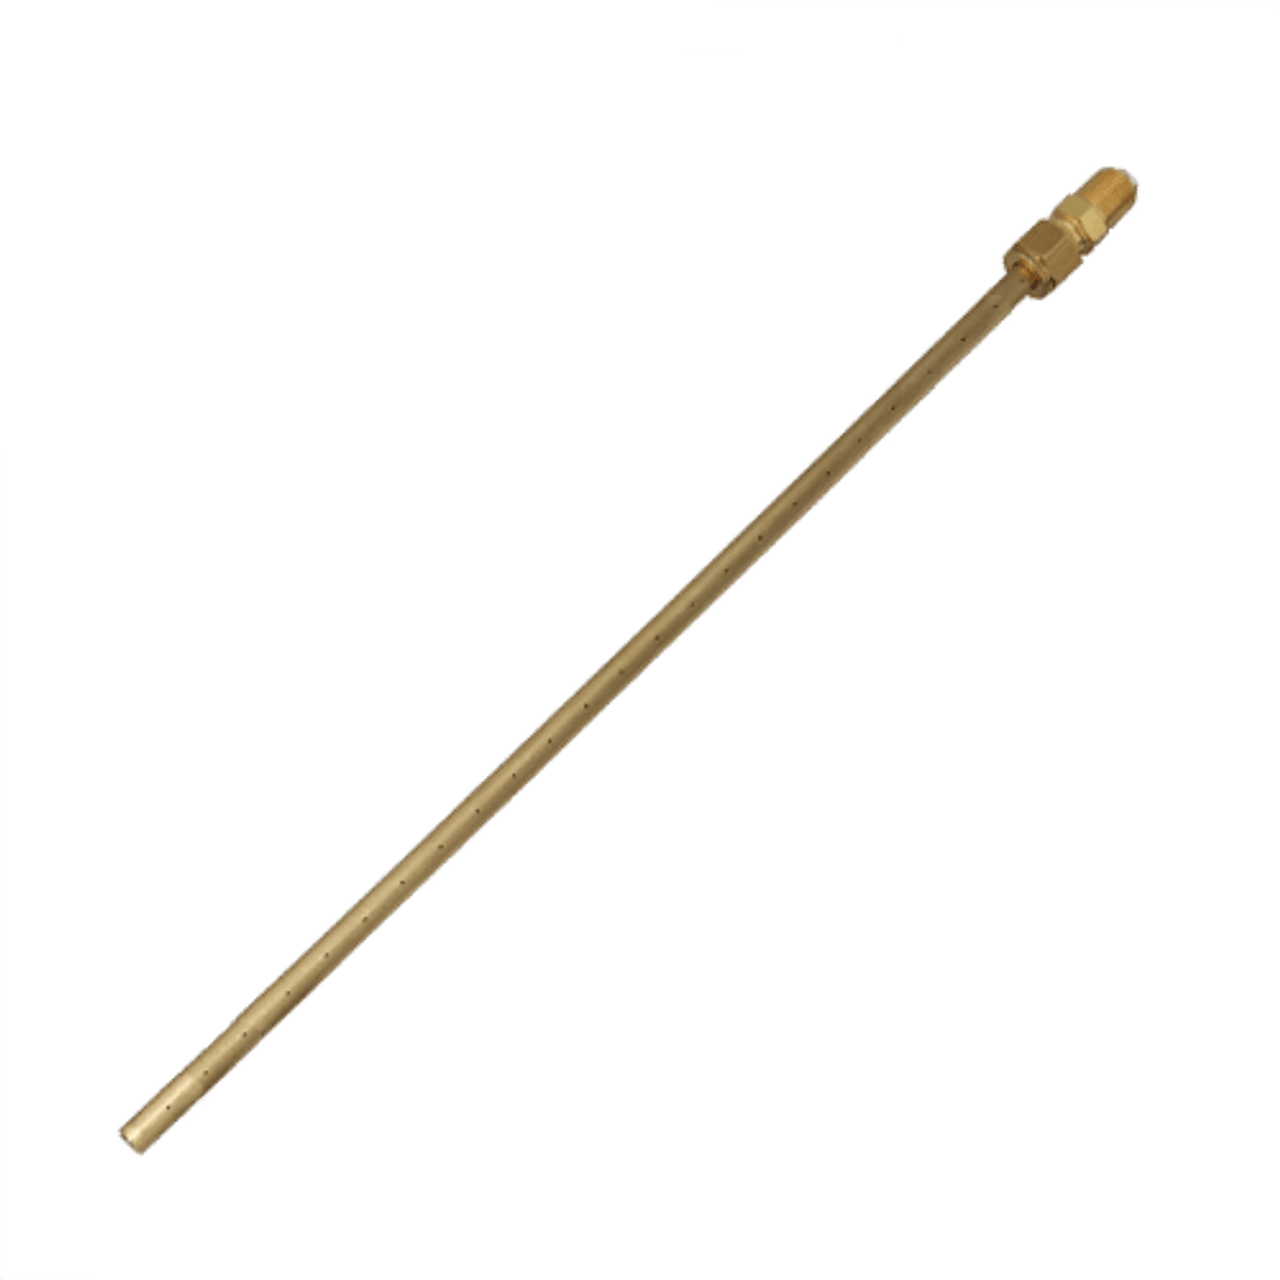 Brass Air Tube (for use with Nuclestat ionizing bars)